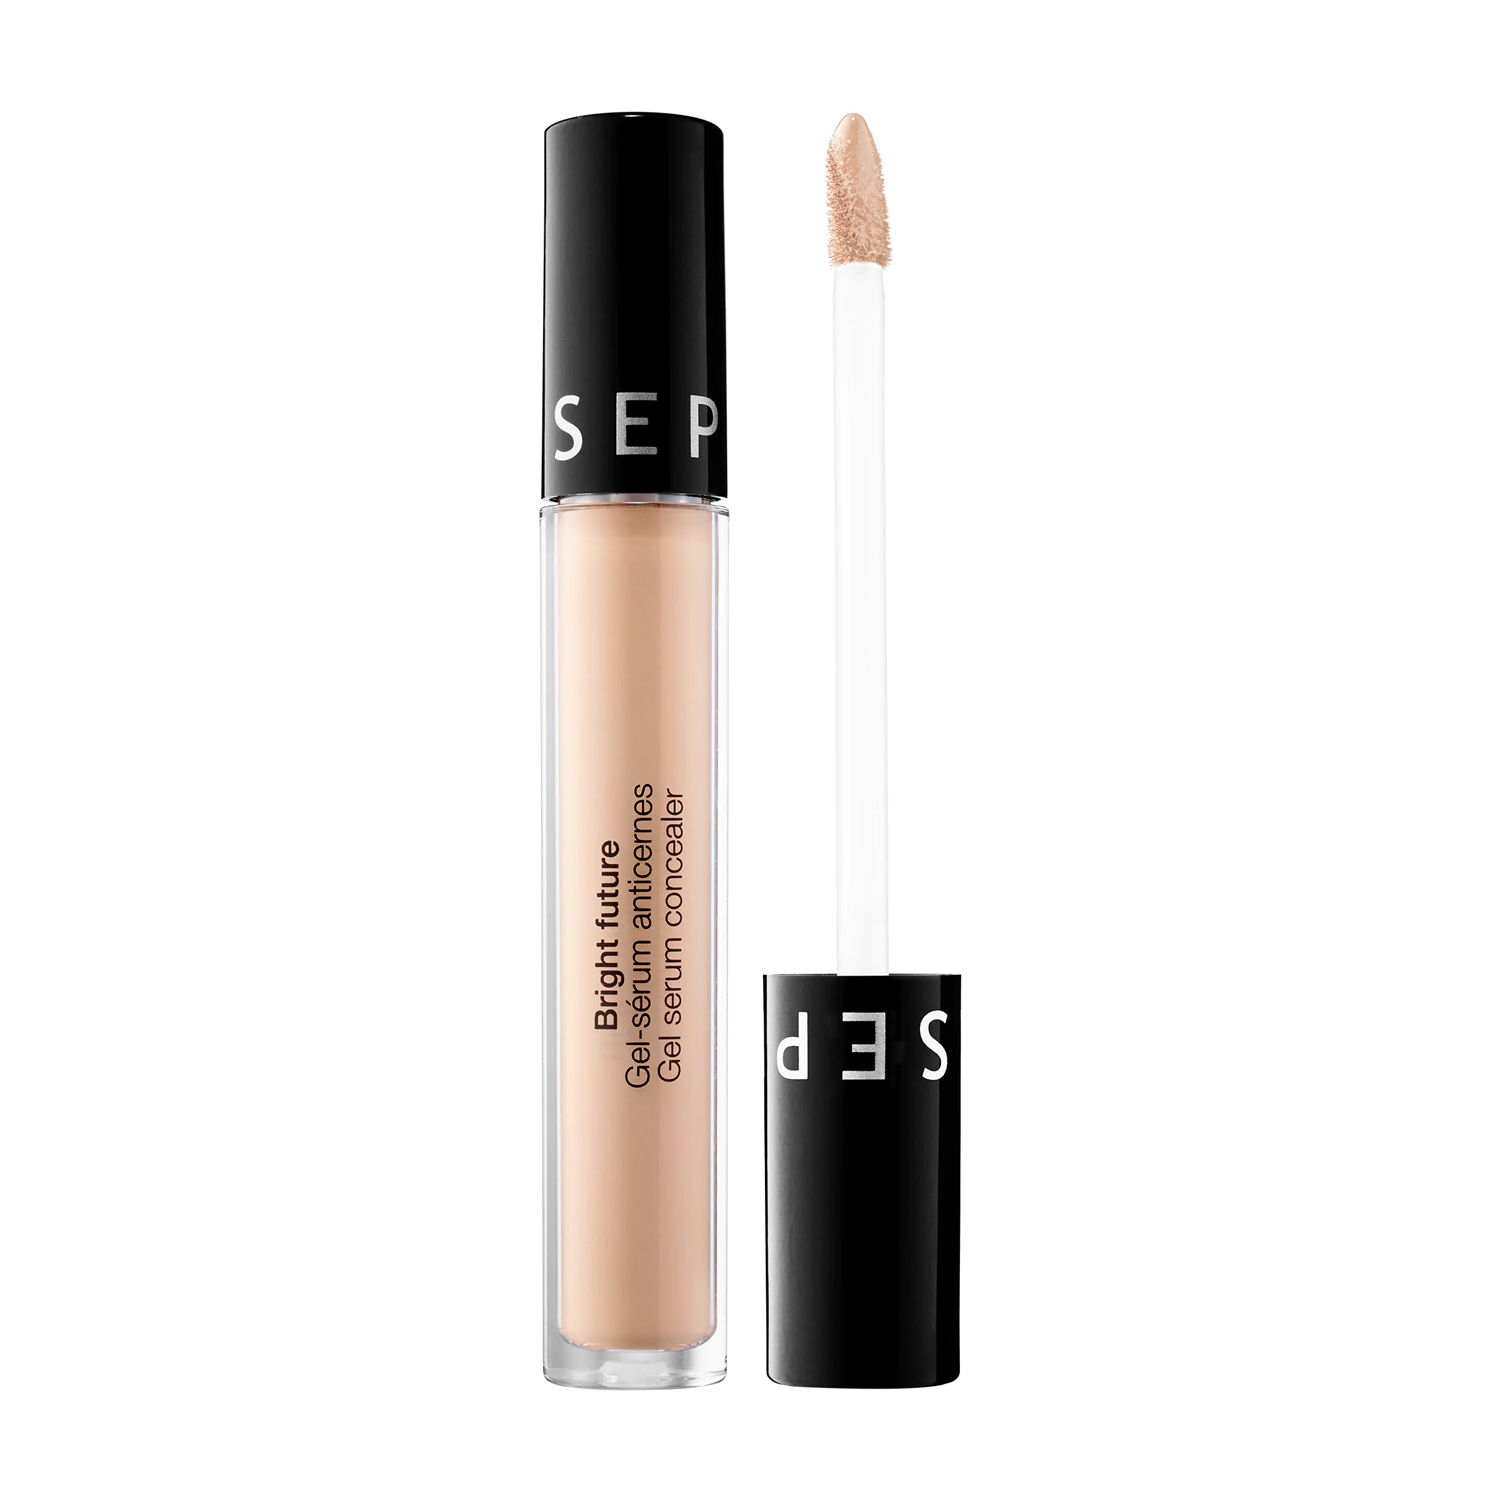 The Best Concealers for Dark Circles